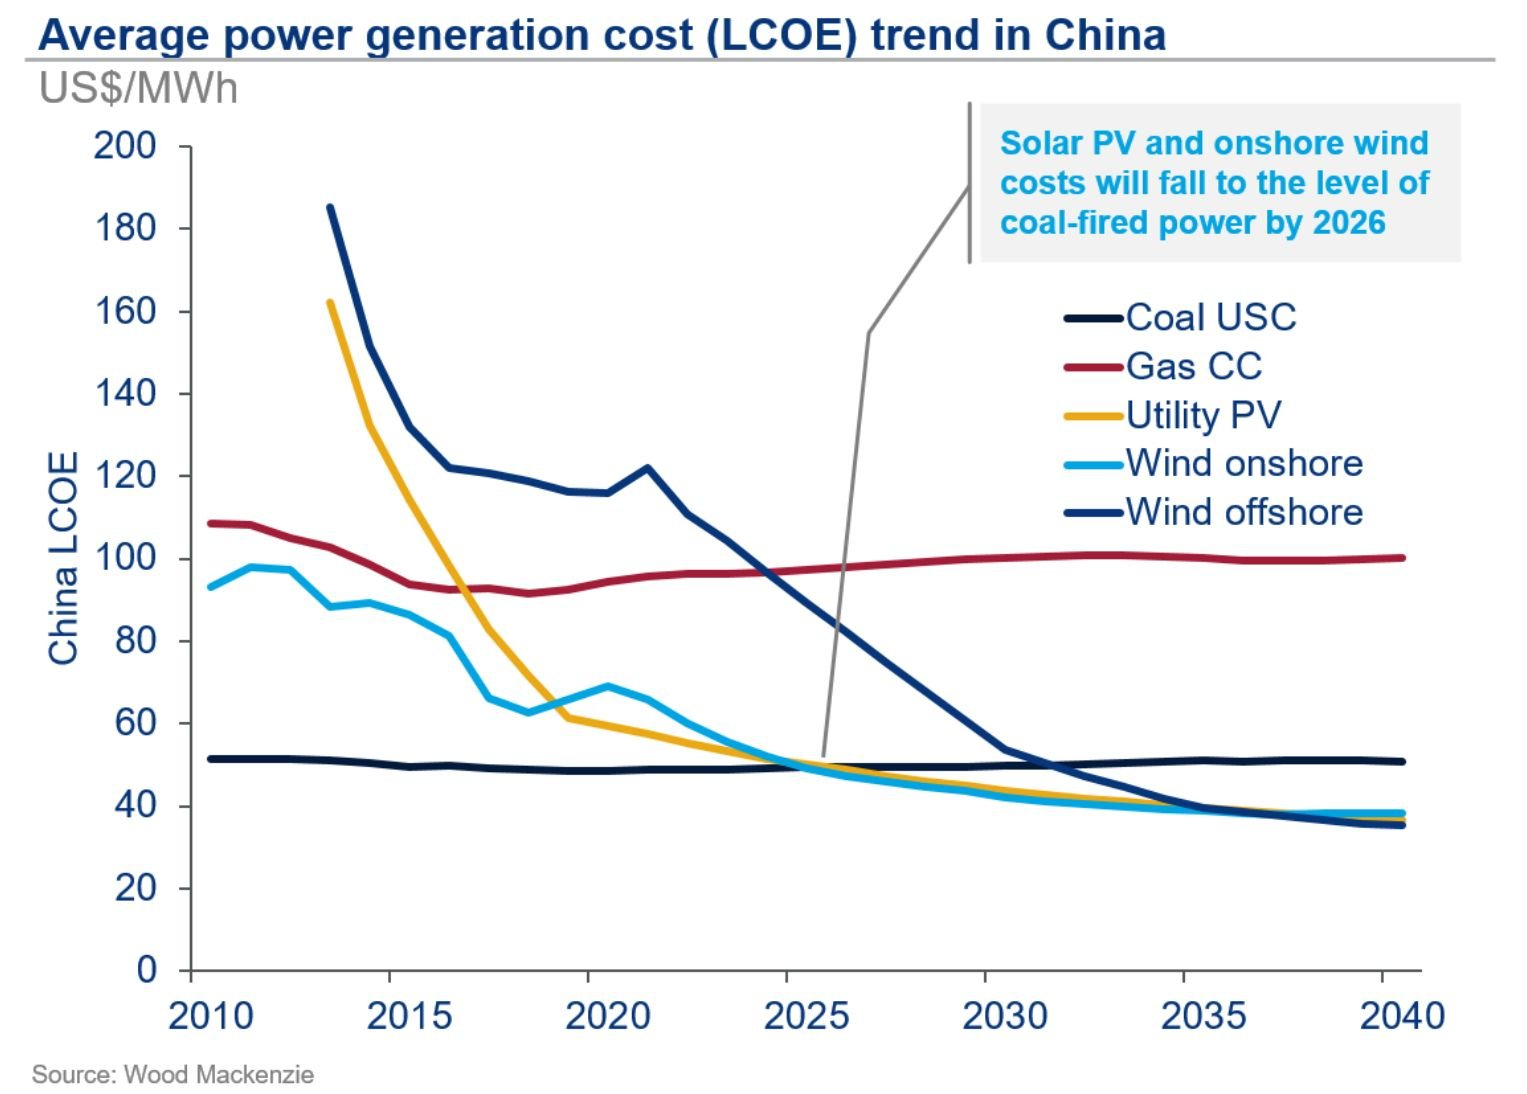 Average power generation cost in China showing solar PV and wind falling below coal in 2026